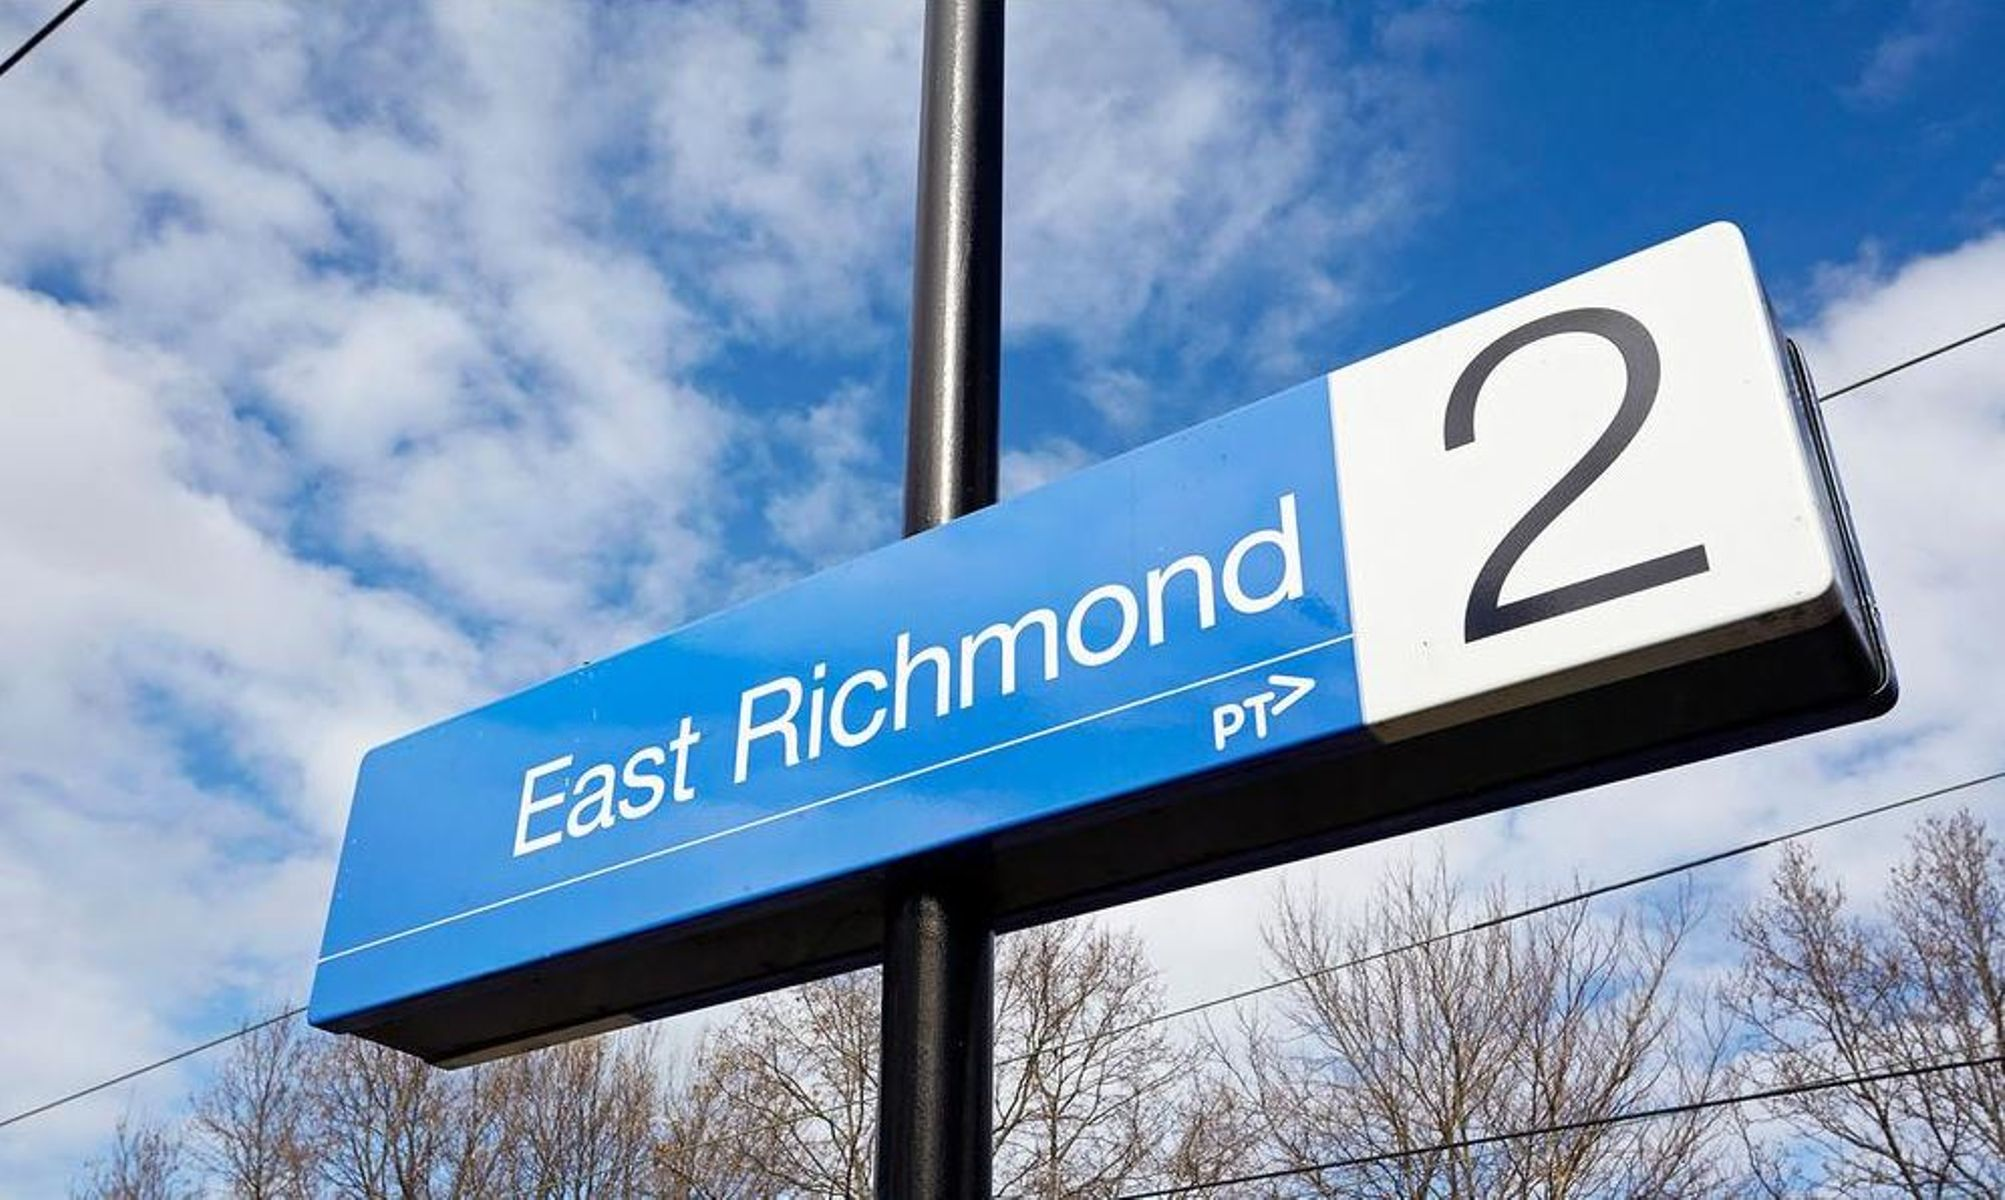 East Richmond Station1